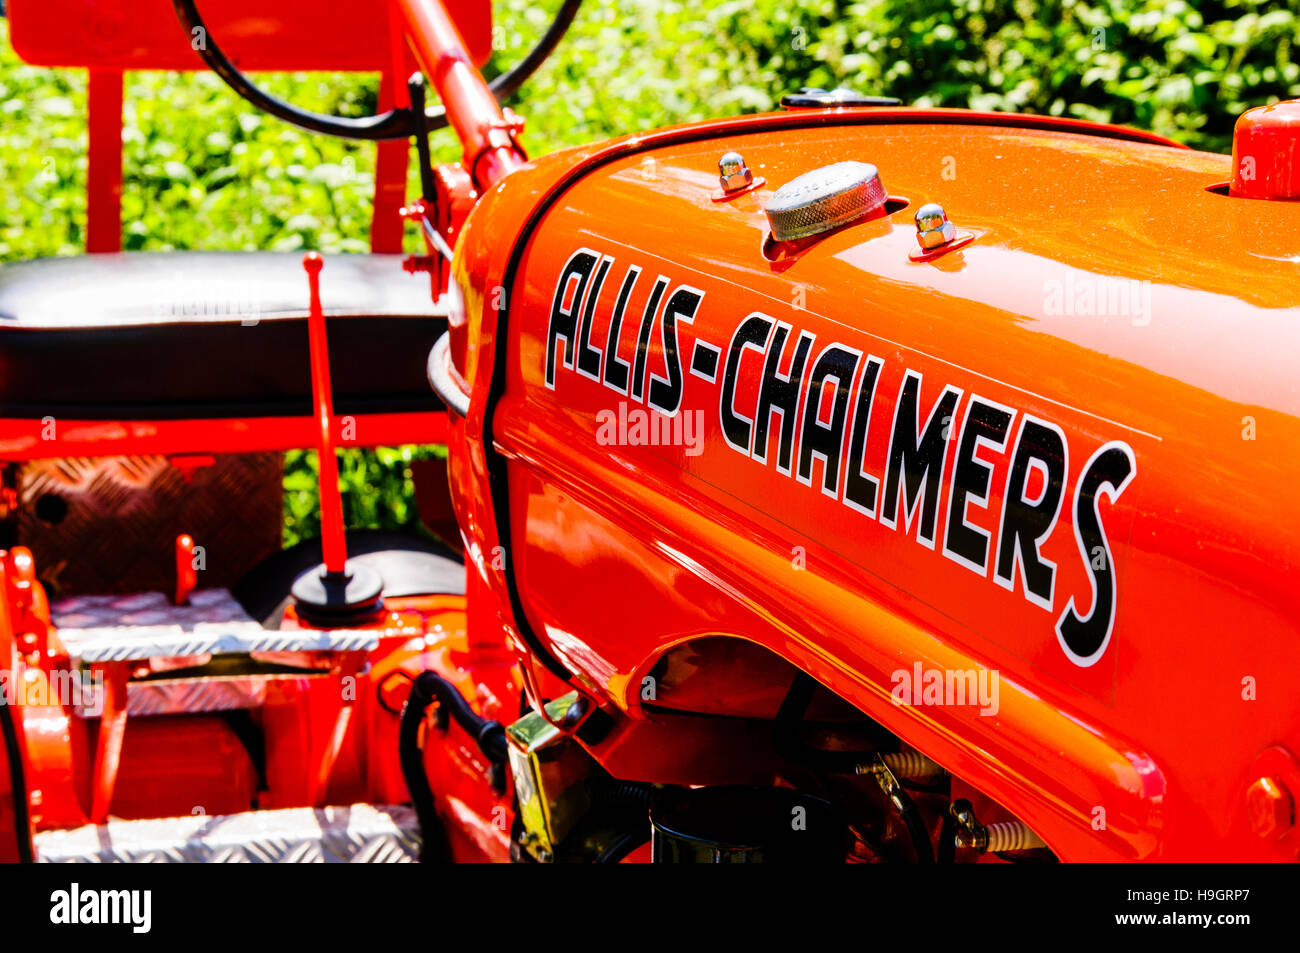 Orange Allis-Chalmers farm tractor from the 1930s - Stock Image